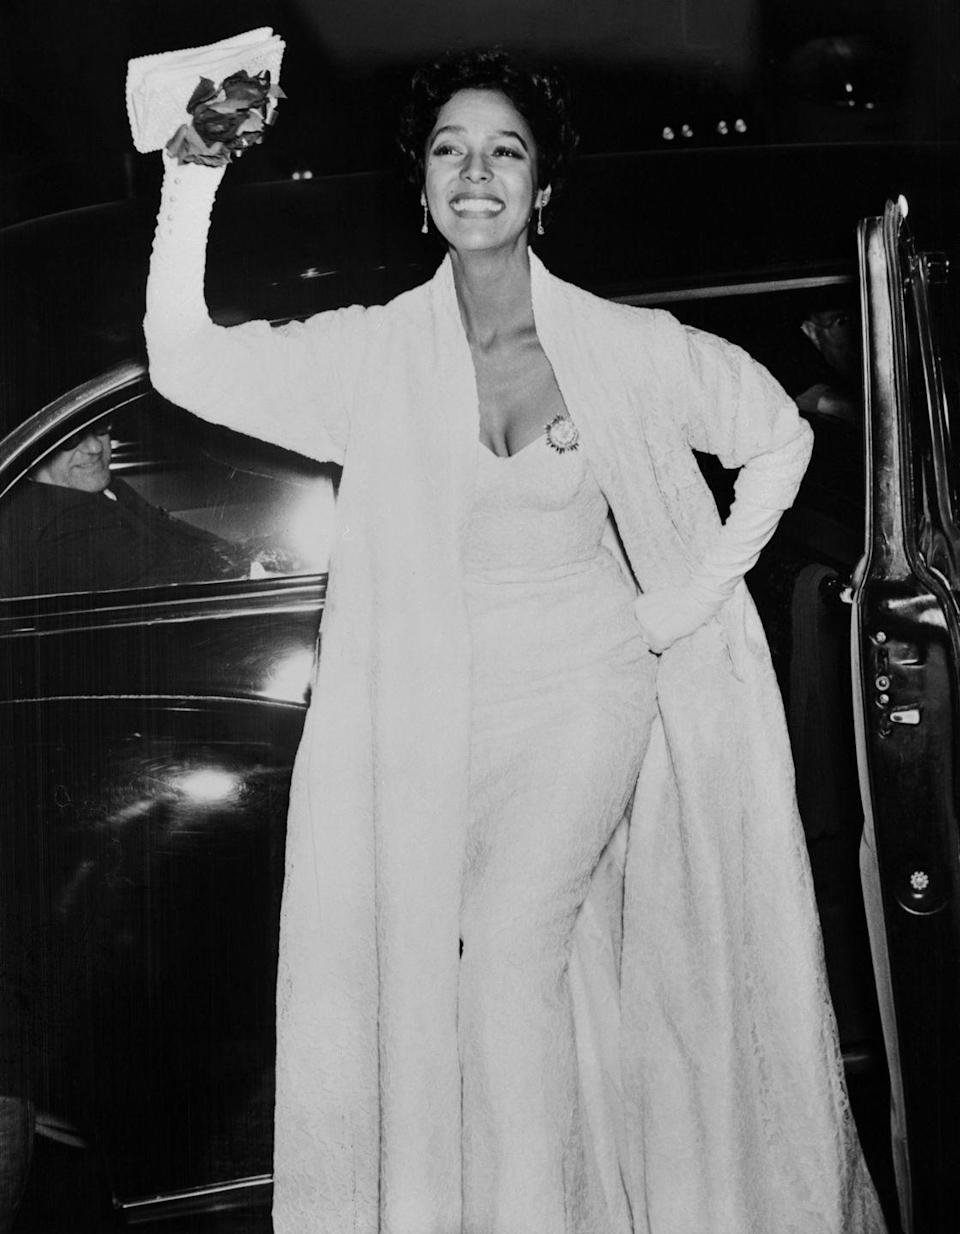 <p>In 1955, Dandridge became the first Black woman to be nominated for Best Actress at the Academy Awards. She was nominated for her role in<em> Carmen Jones</em>. She lost to Grace Kelly for <em>The</em> <em>Country Girl. </em></p>